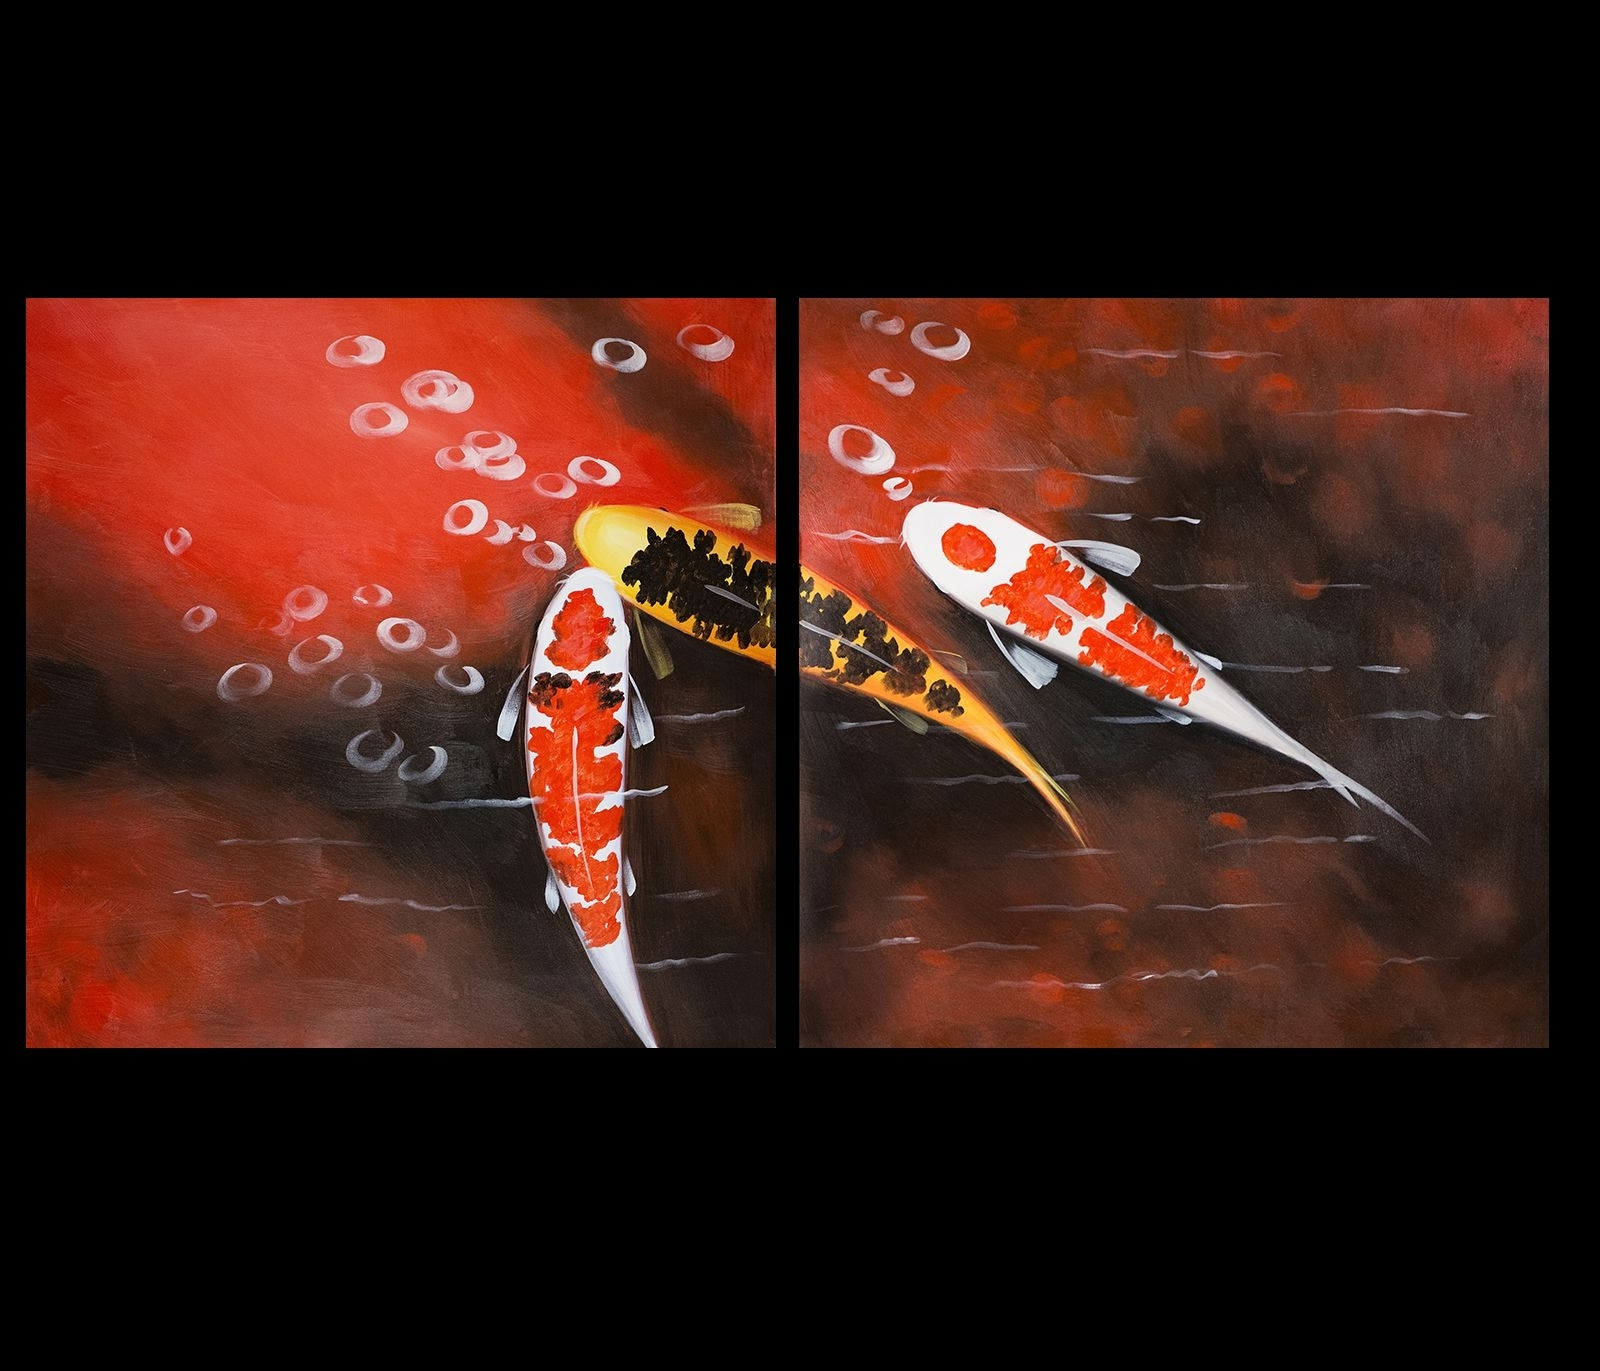 Widely Used Koi Fish Wall Art Contemporary Art Modern Wall Art Décor Print On With Regard To Fish Painting Wall Art (Gallery 5 of 20)